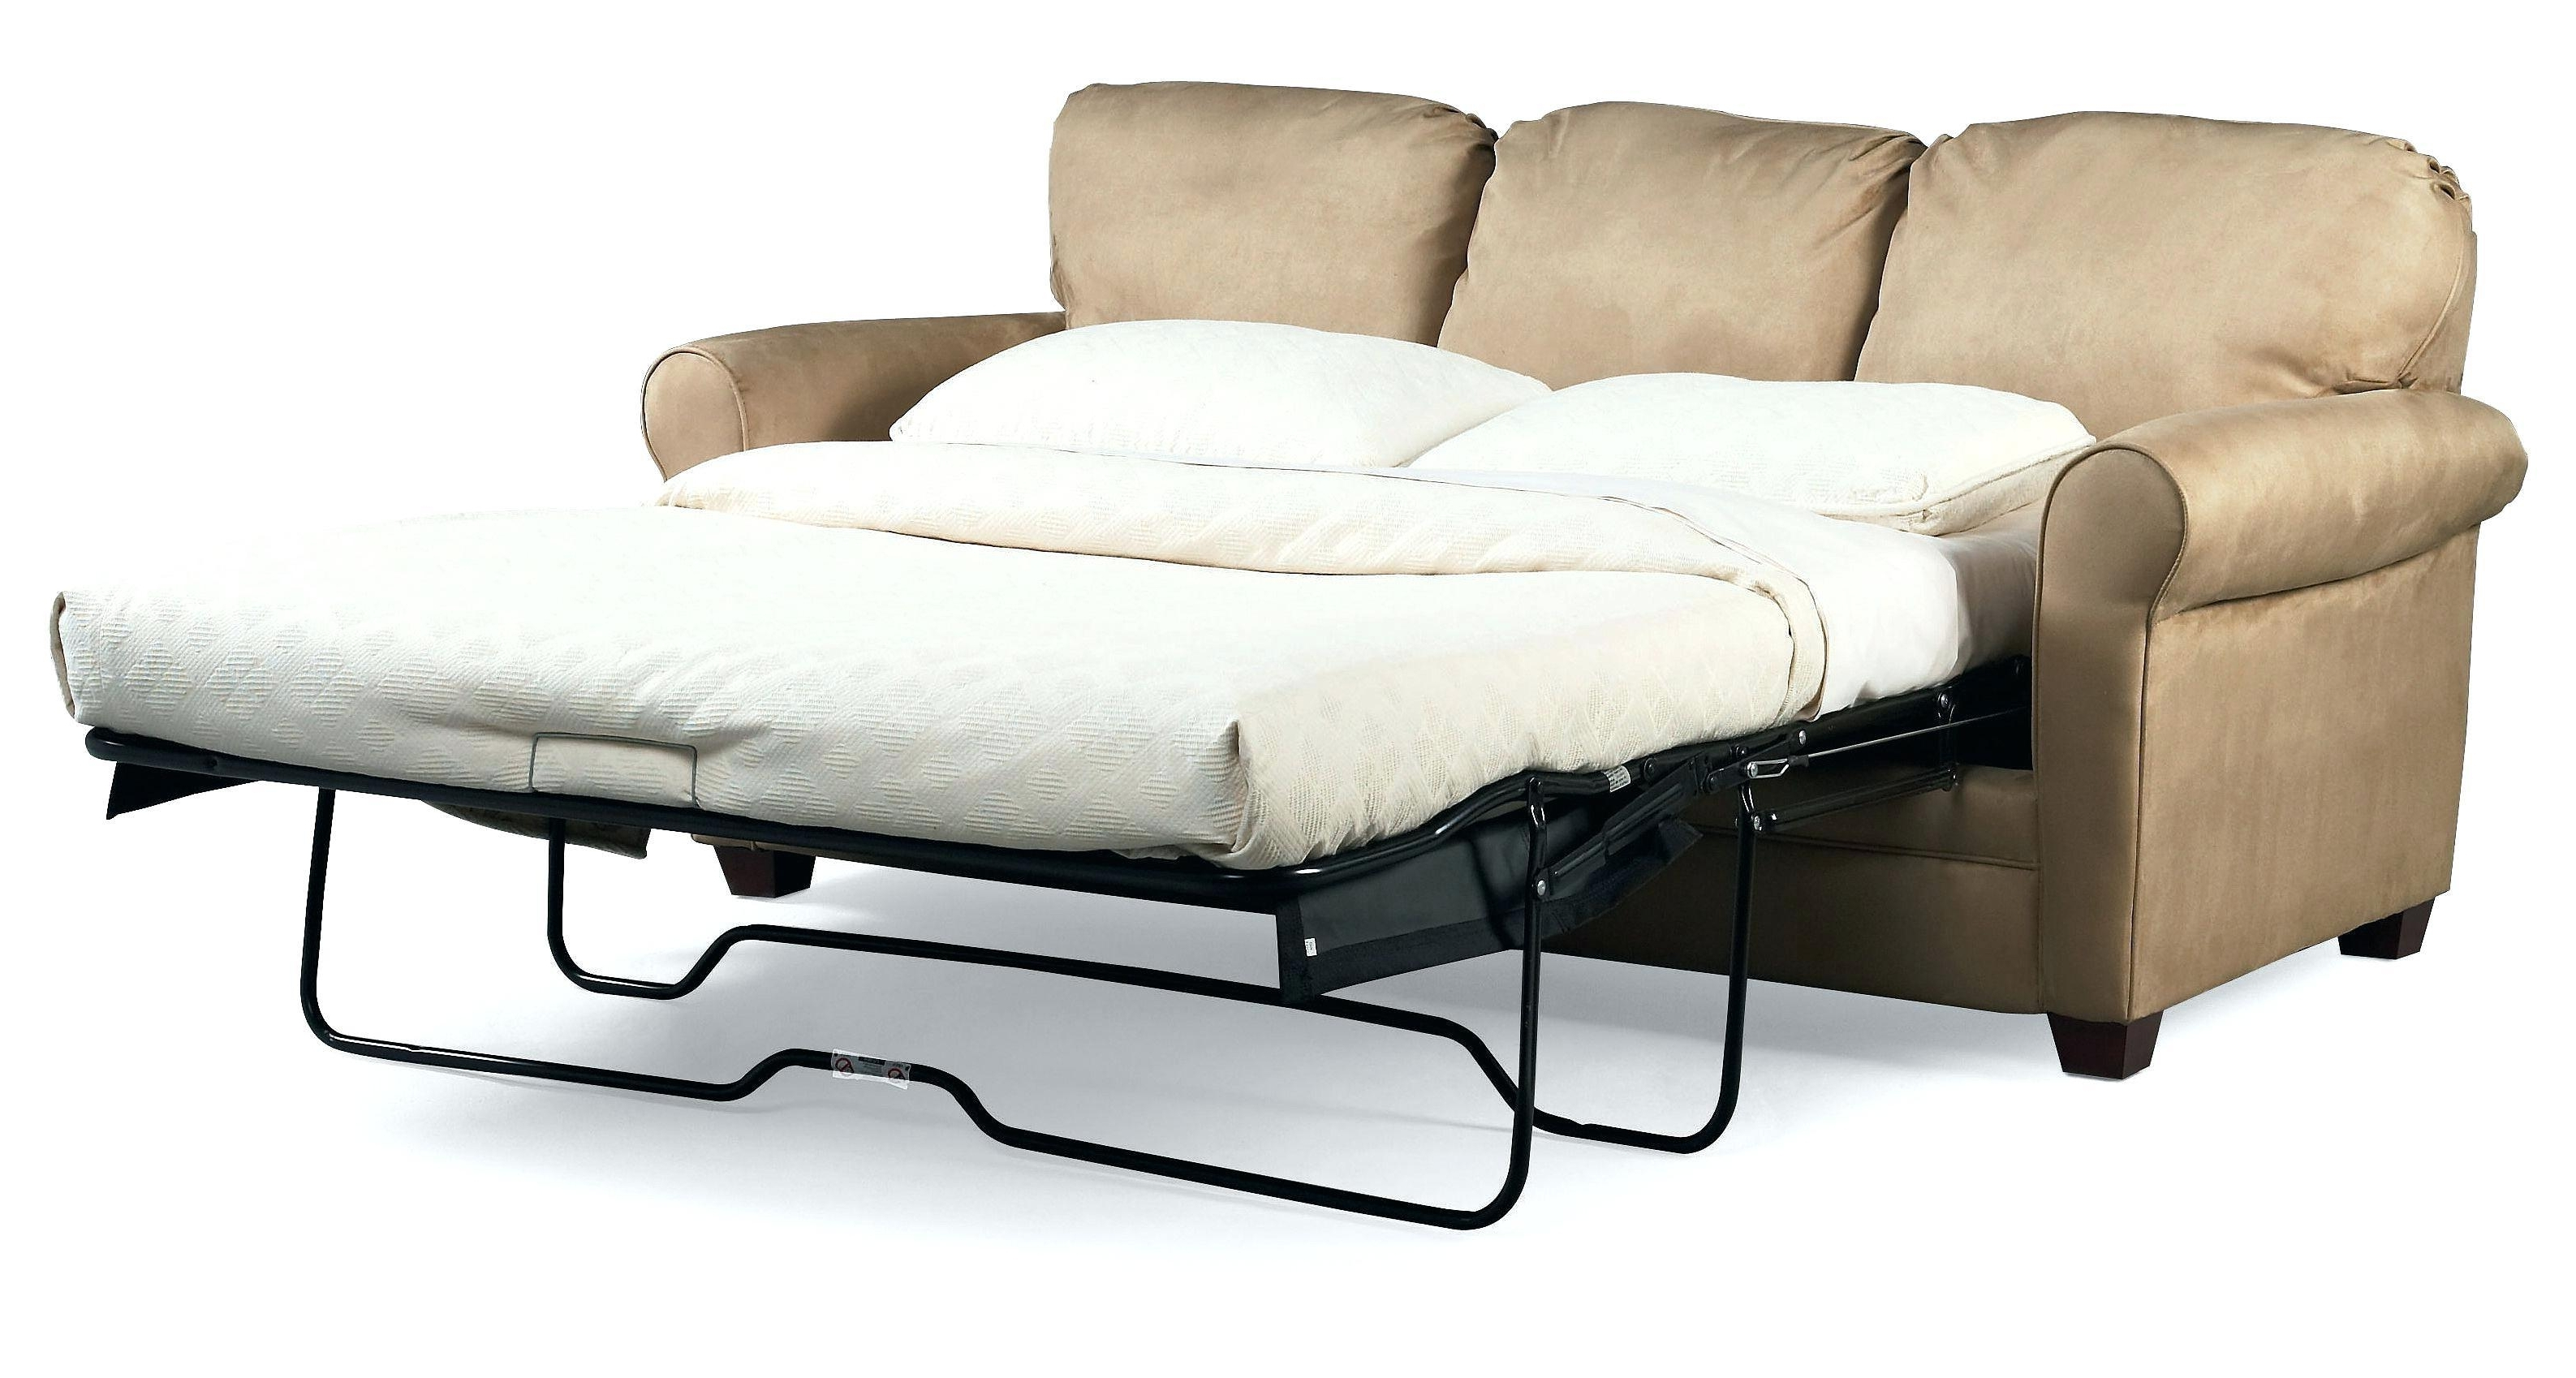 Newest Queen Size Sofas In Awesome Queen Size Sleeper Sofa Sa With Memory Foam Mattress Provo (View 8 of 15)